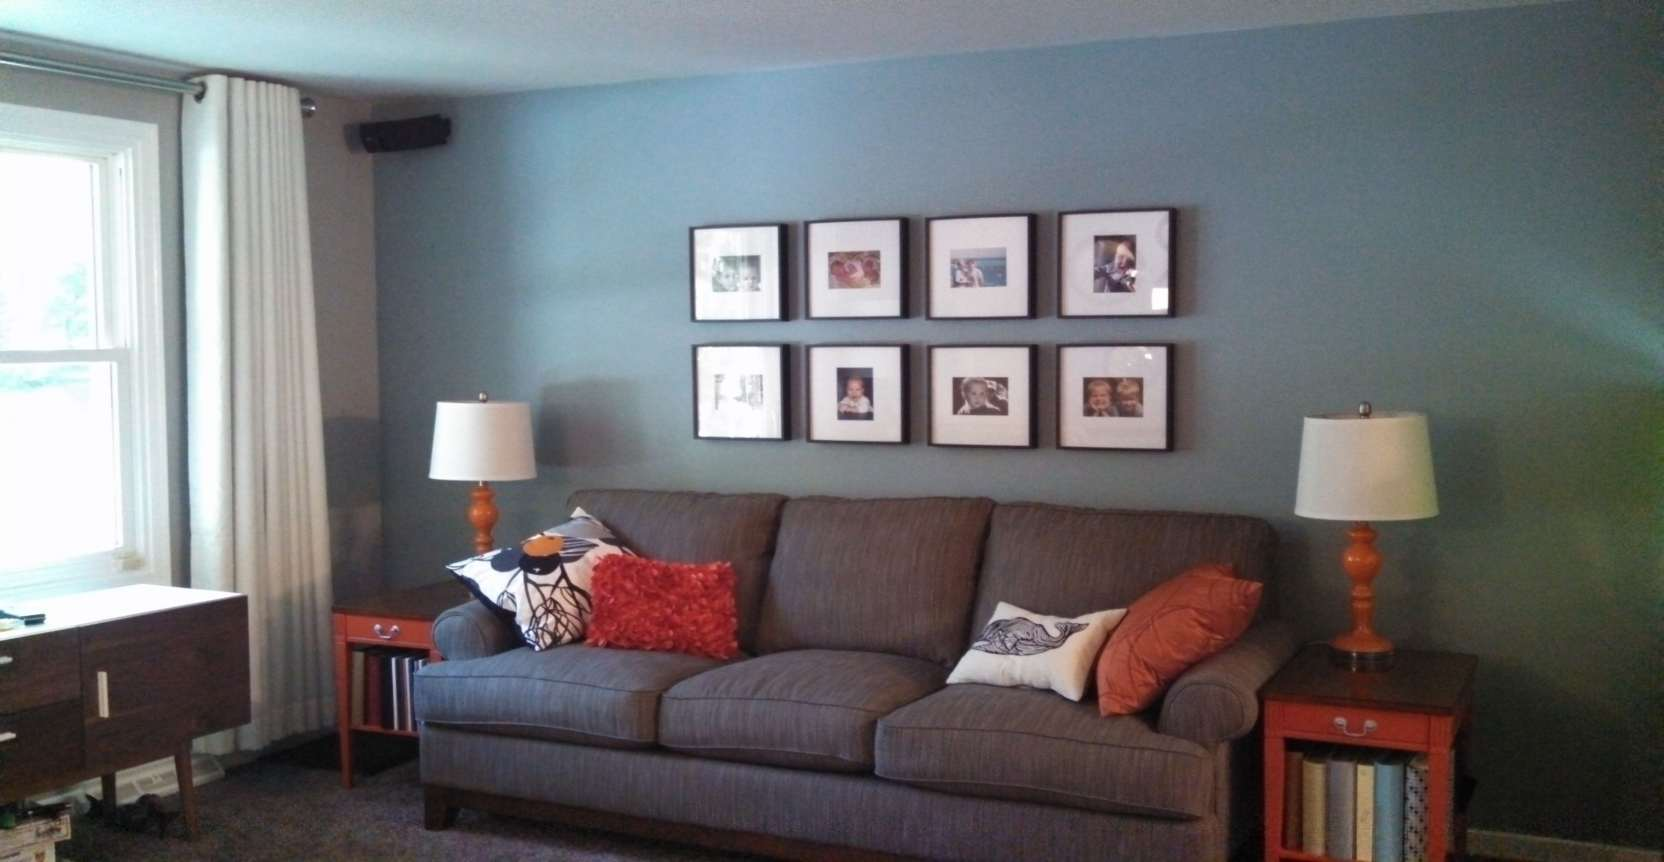 blue living room walls superb luxury artwork home lovely gray wall sofa orange accent tables light table design acrylic chairs outside patio furniture ashley armoire shower head